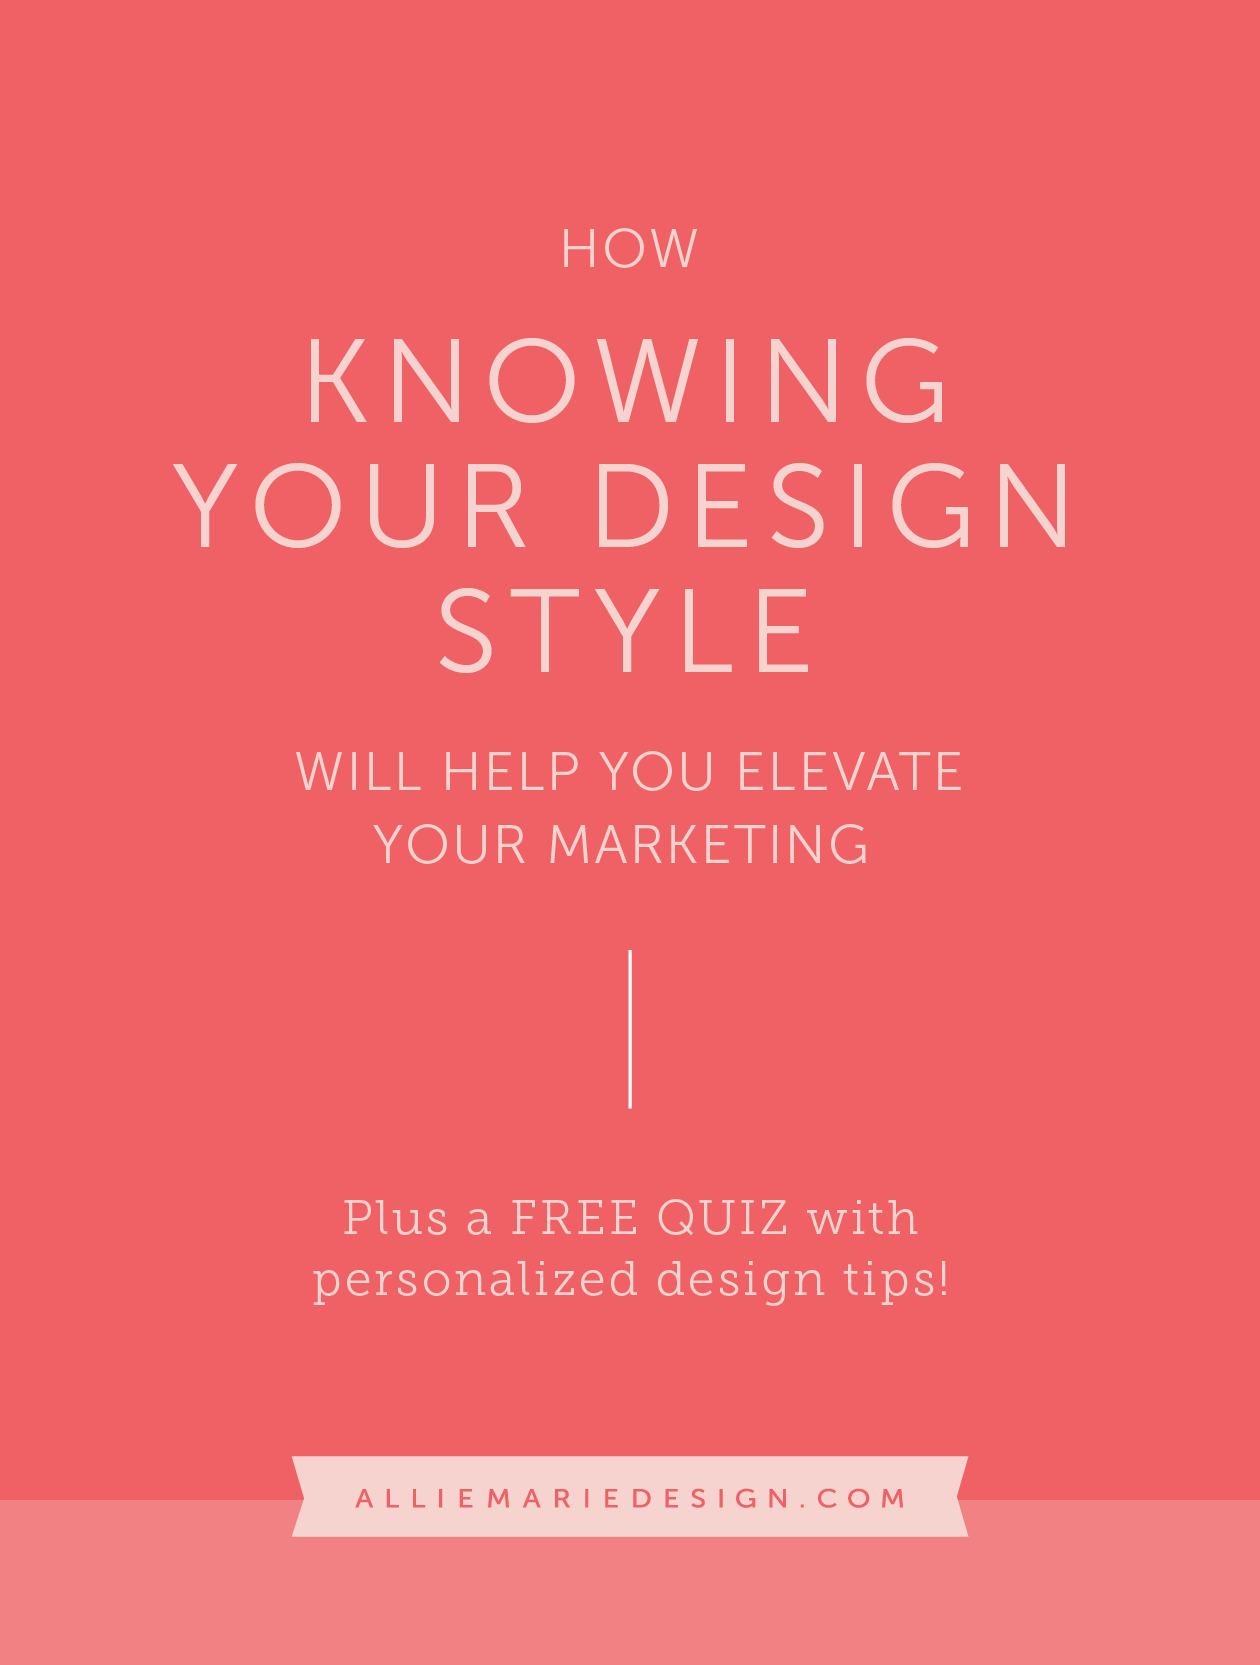 How Choosing a Design Style Will Help You Elevate Your Marketing for your Small Business     Plus a free design personality quiz with personalized tips to help you enhance your style     AllieMarie Design